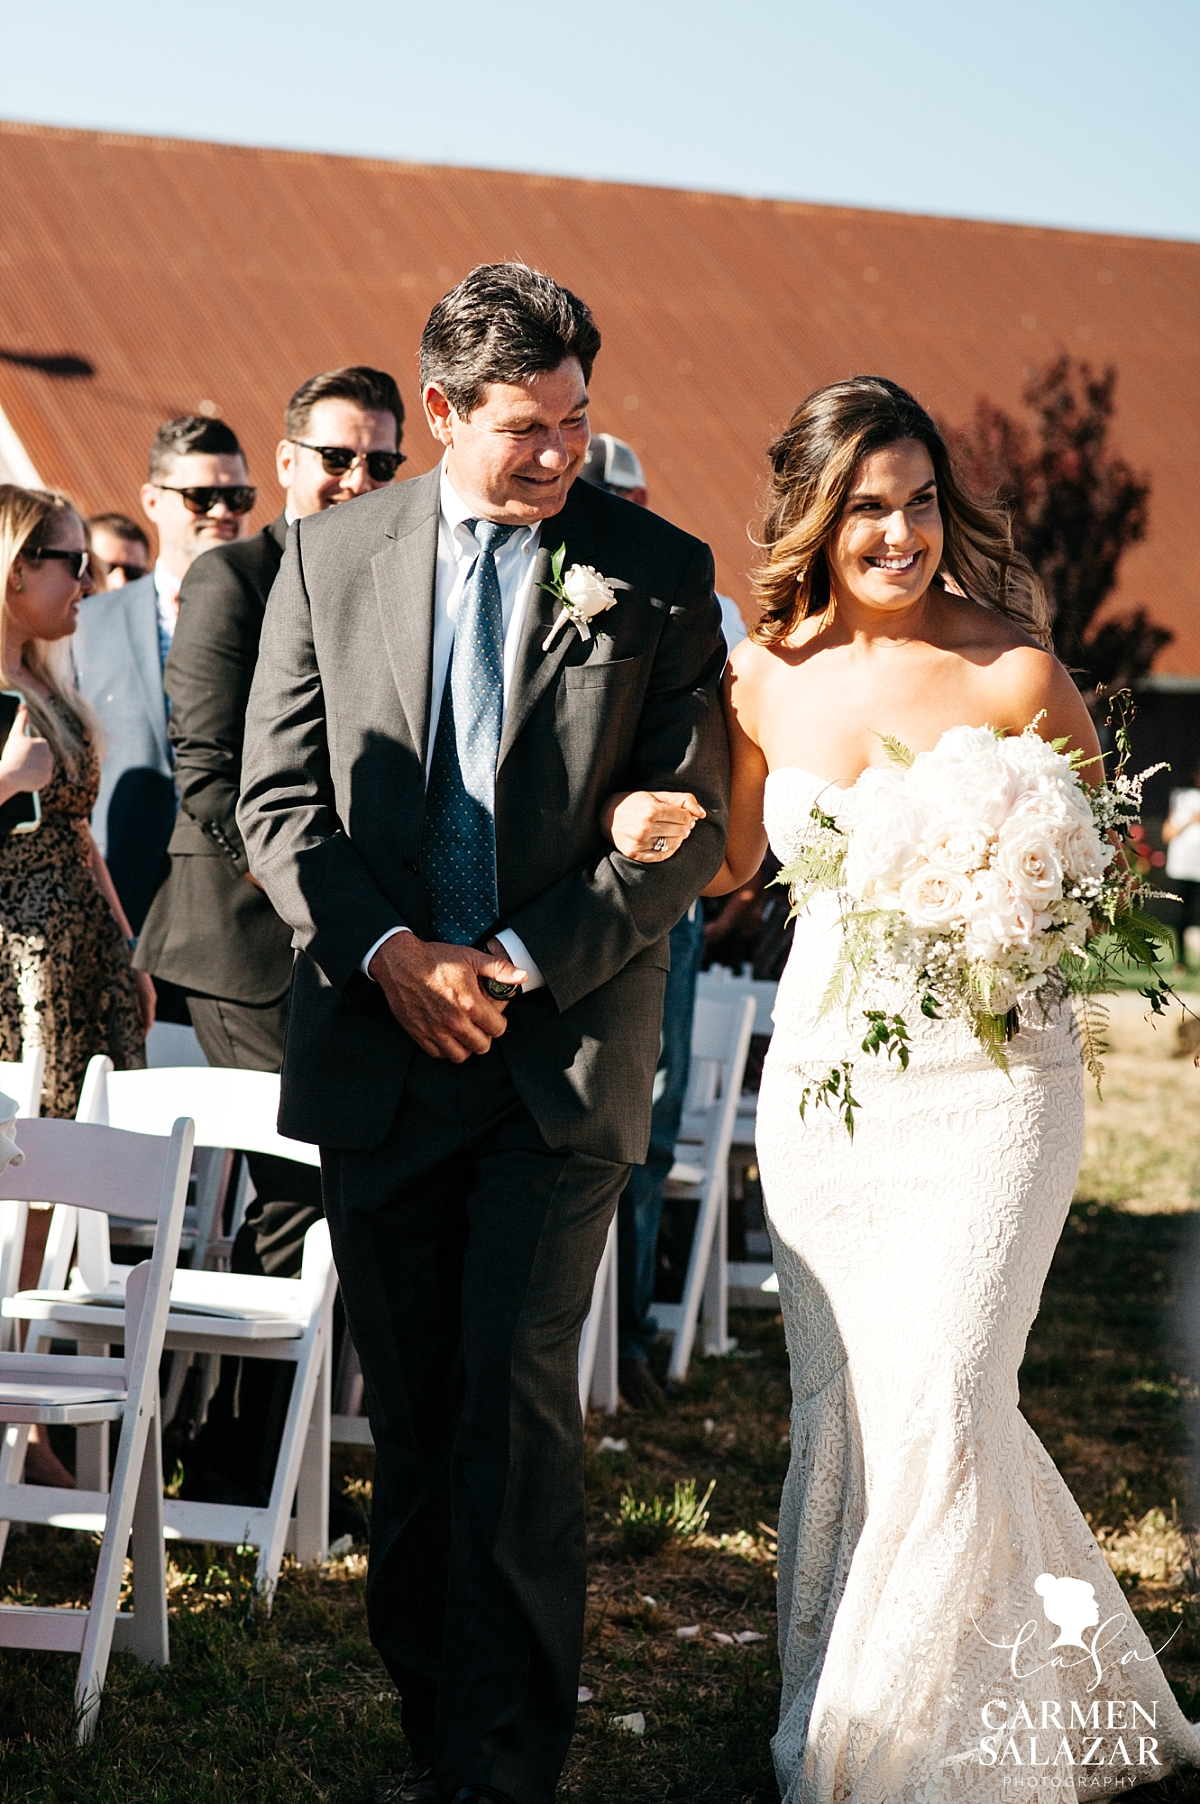 Barn wedding bride walks the aisle - Carmen Salazar